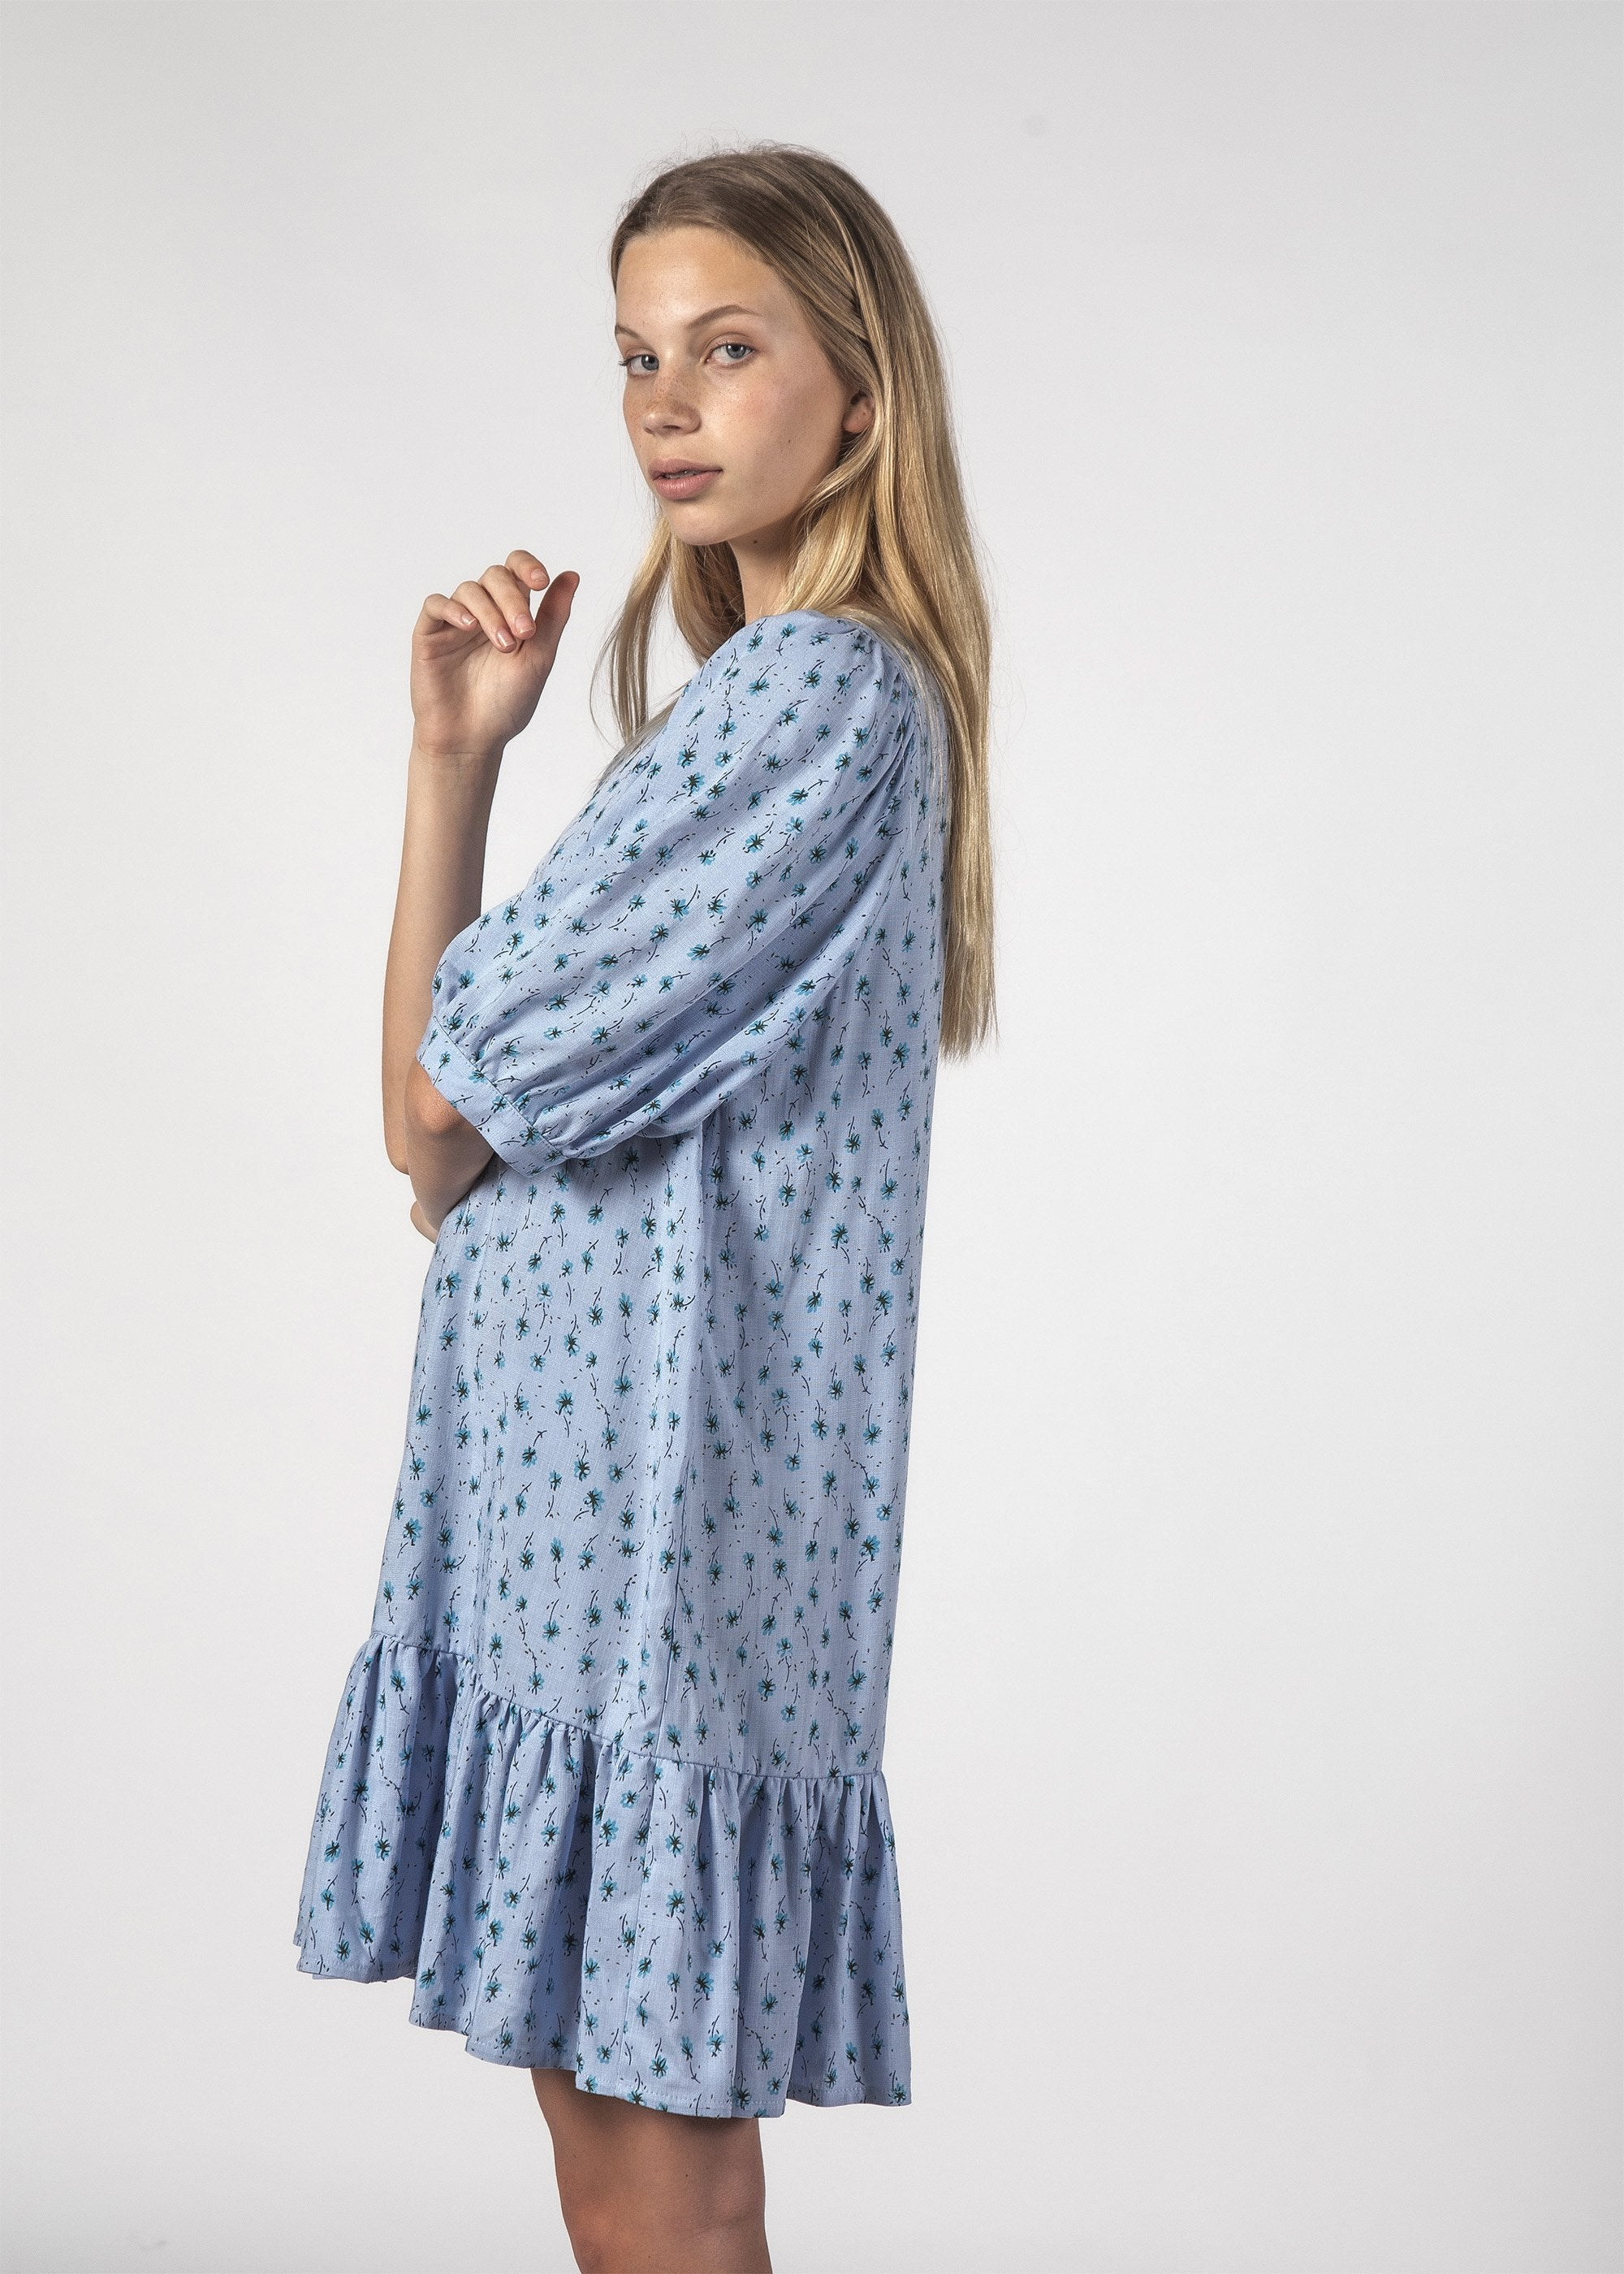 BLESSFUL DRESS - Baby Blue Ditsy